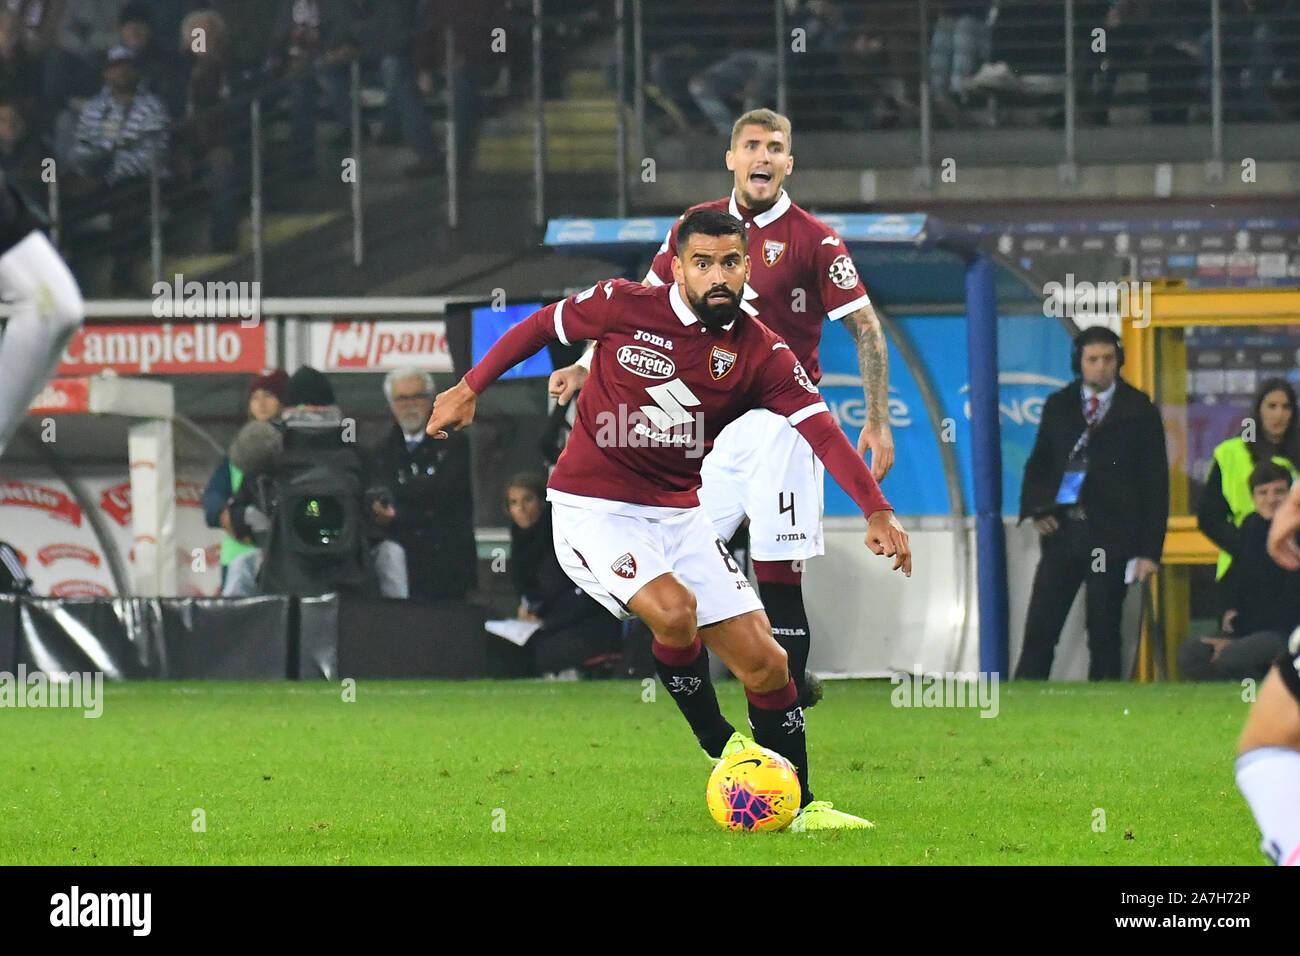 Tomas Rincon (Torino FC) during the Serie A football match between Torino FC and Juventus FC at Stadio Grande Torino on 2st November, 2019 in Turin, Italy. Stock Photo